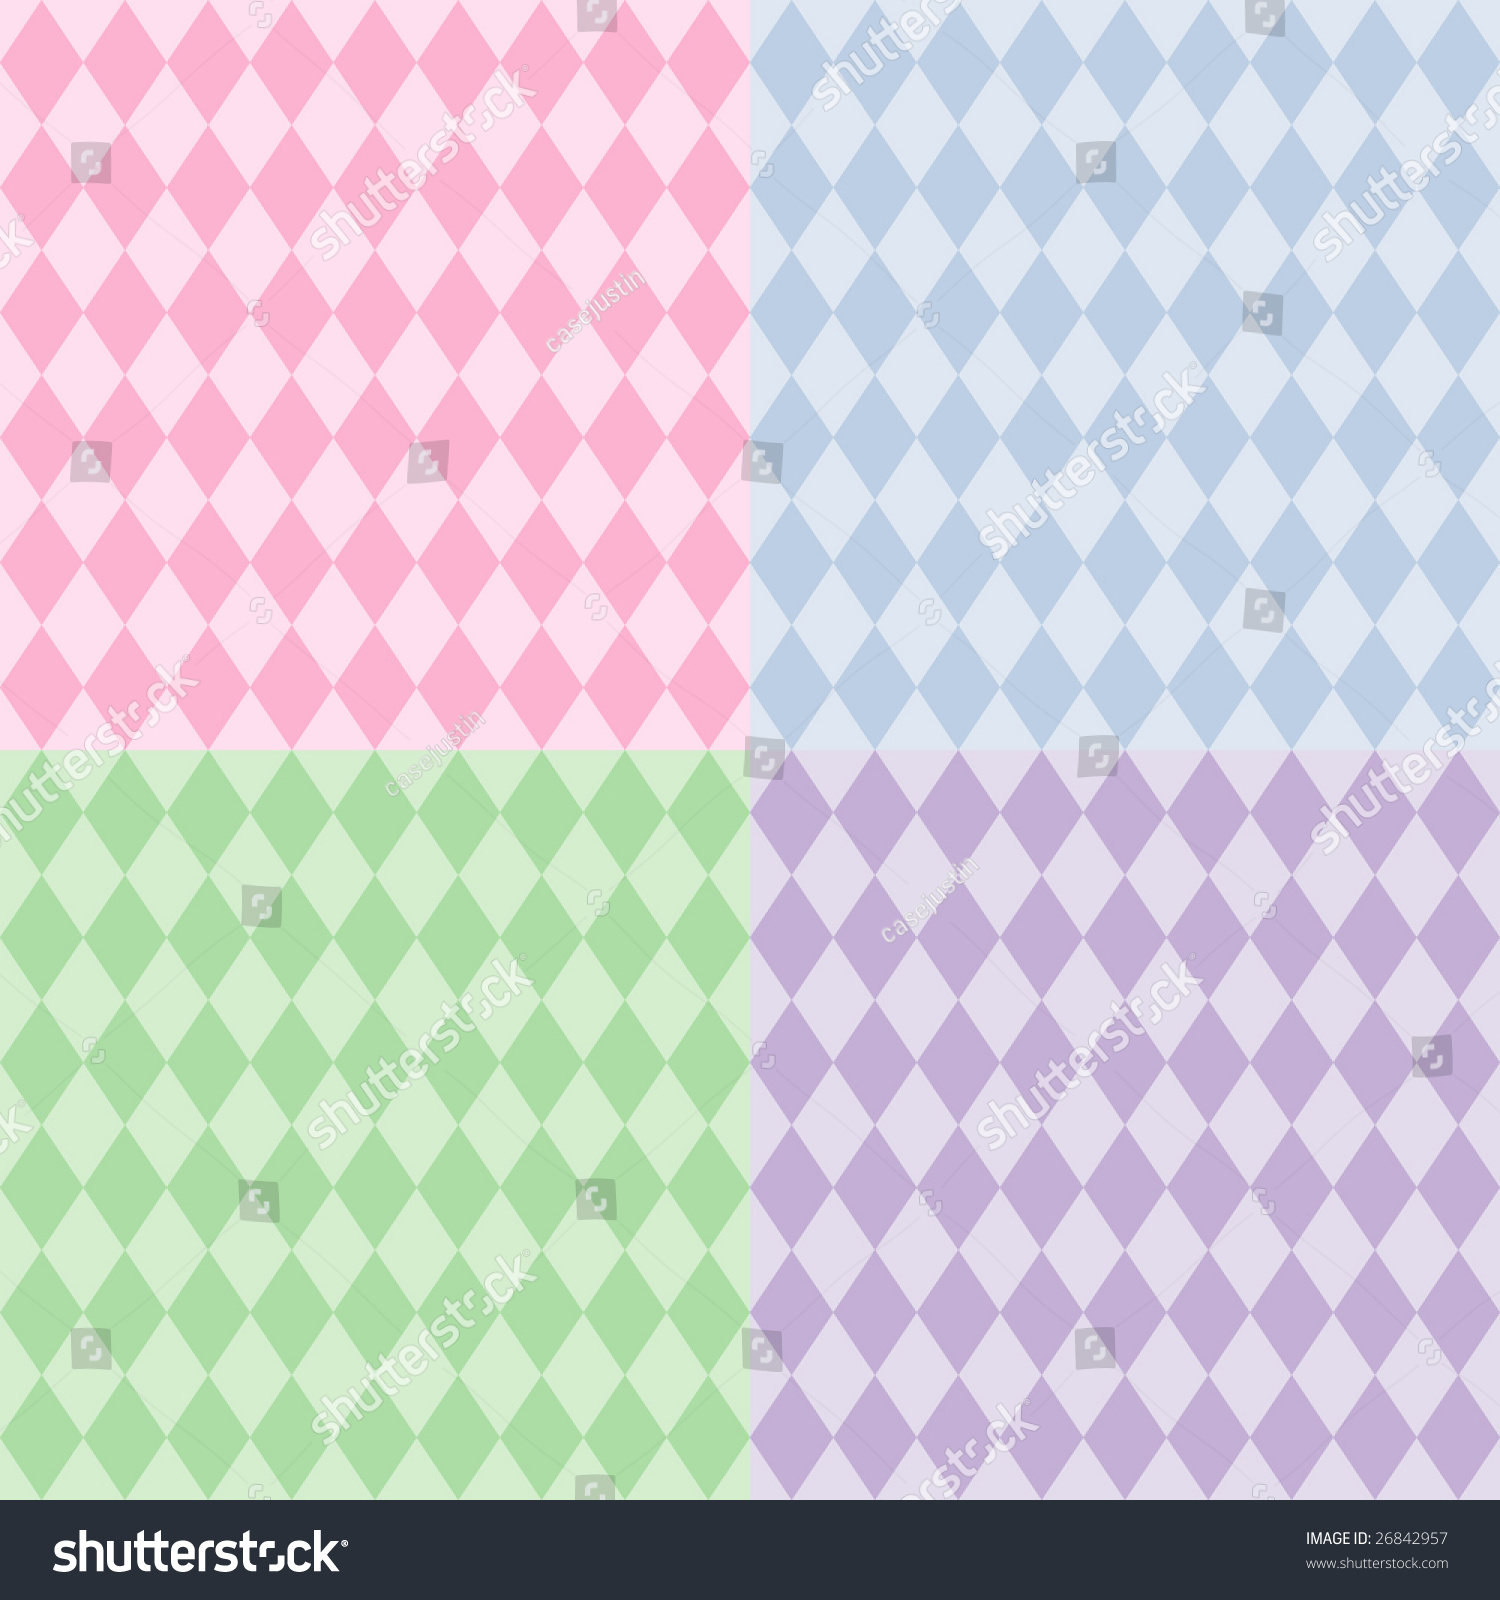 Pastel Purple Pink Green Blue Timber Wood Look: Harlequin Seamless Patterns: Diamond Design Backgrounds In